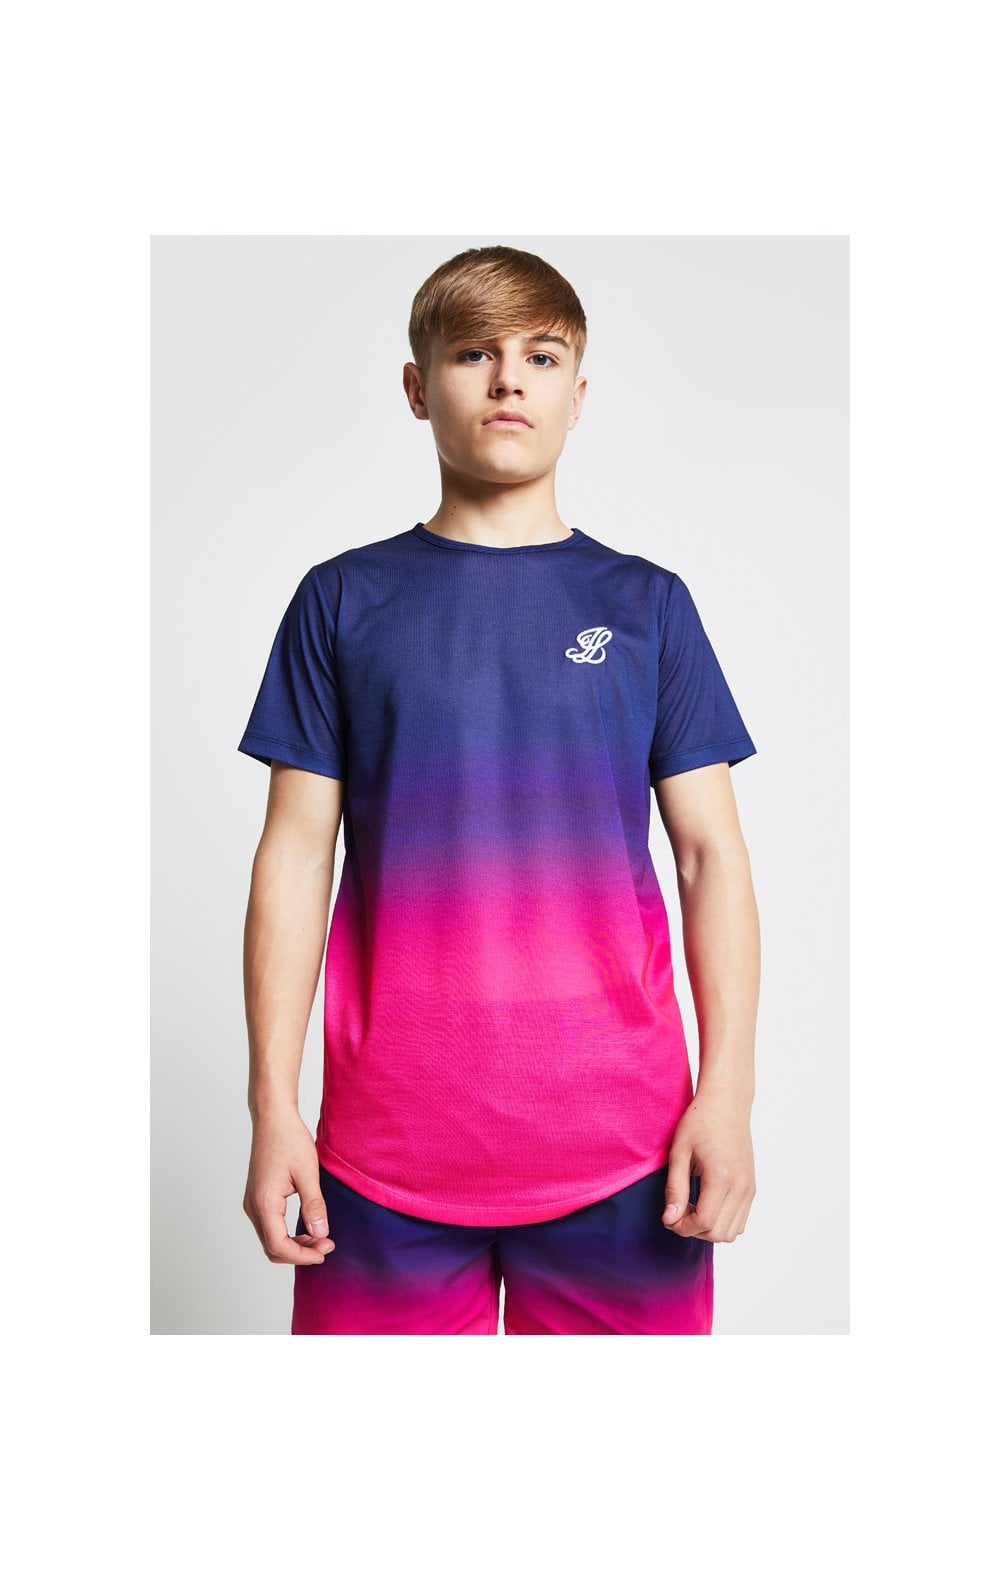 Load image into Gallery viewer, Illusive London Fade Tee - Navy & Pink